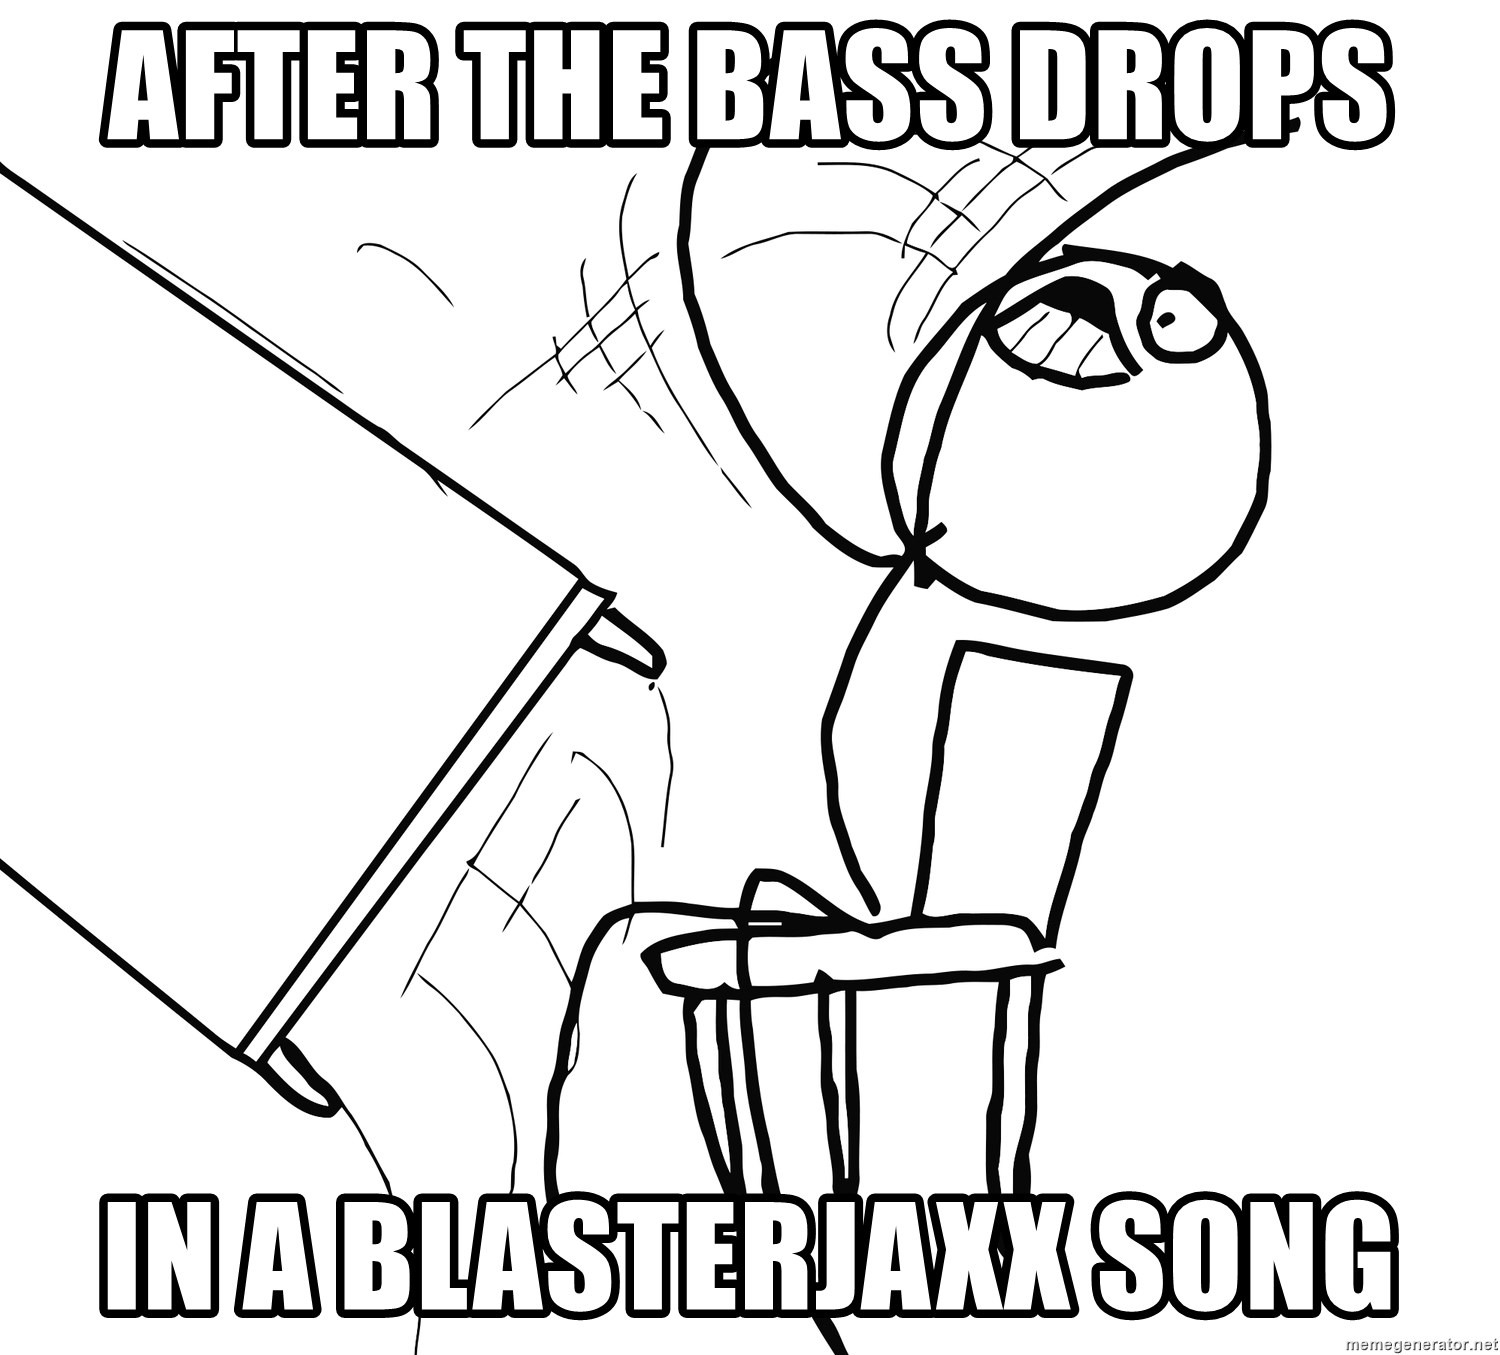 Desk Flip Rage Guy - After The Bass Drops  In a Blasterjaxx Song